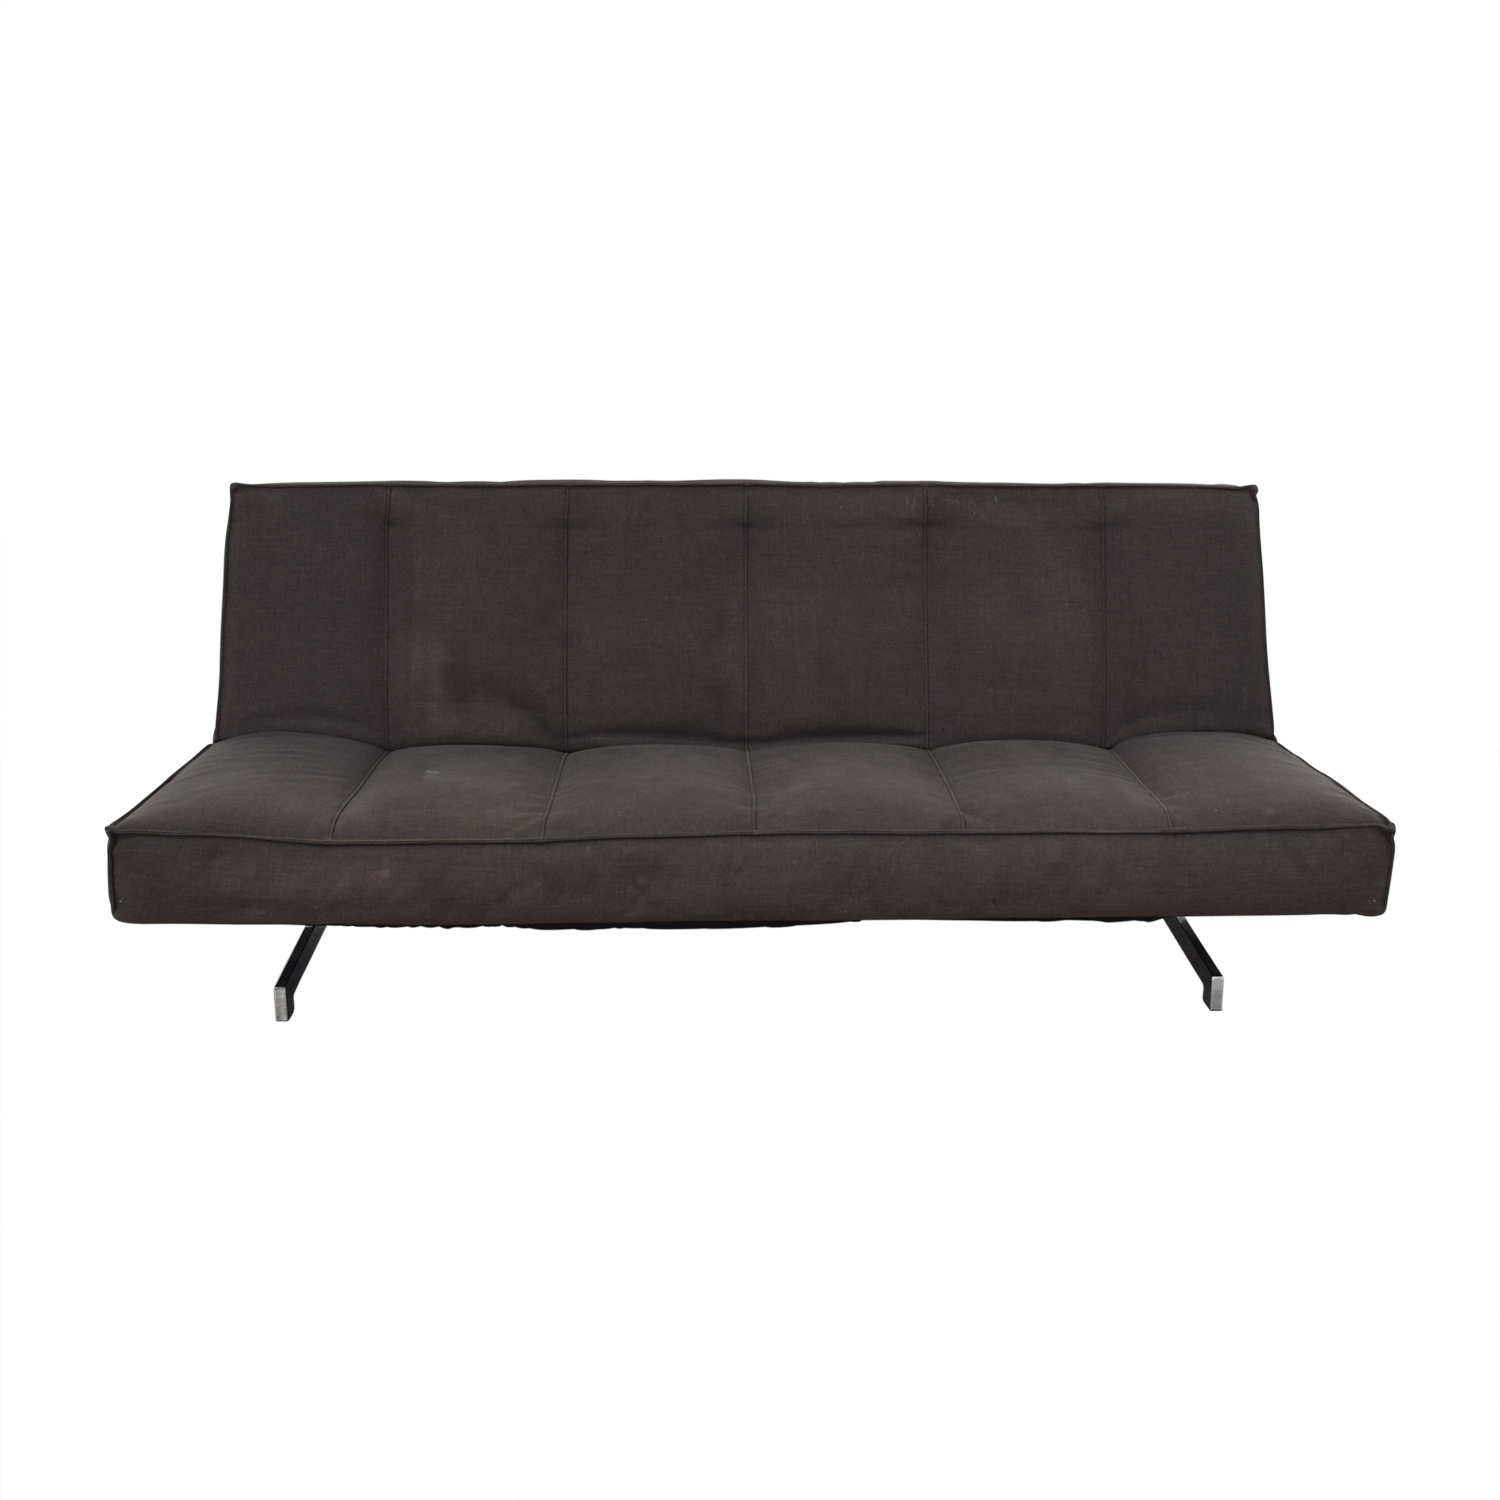 shop CB2 Flex Gravel Sleeper Sofa CB2 Chaises